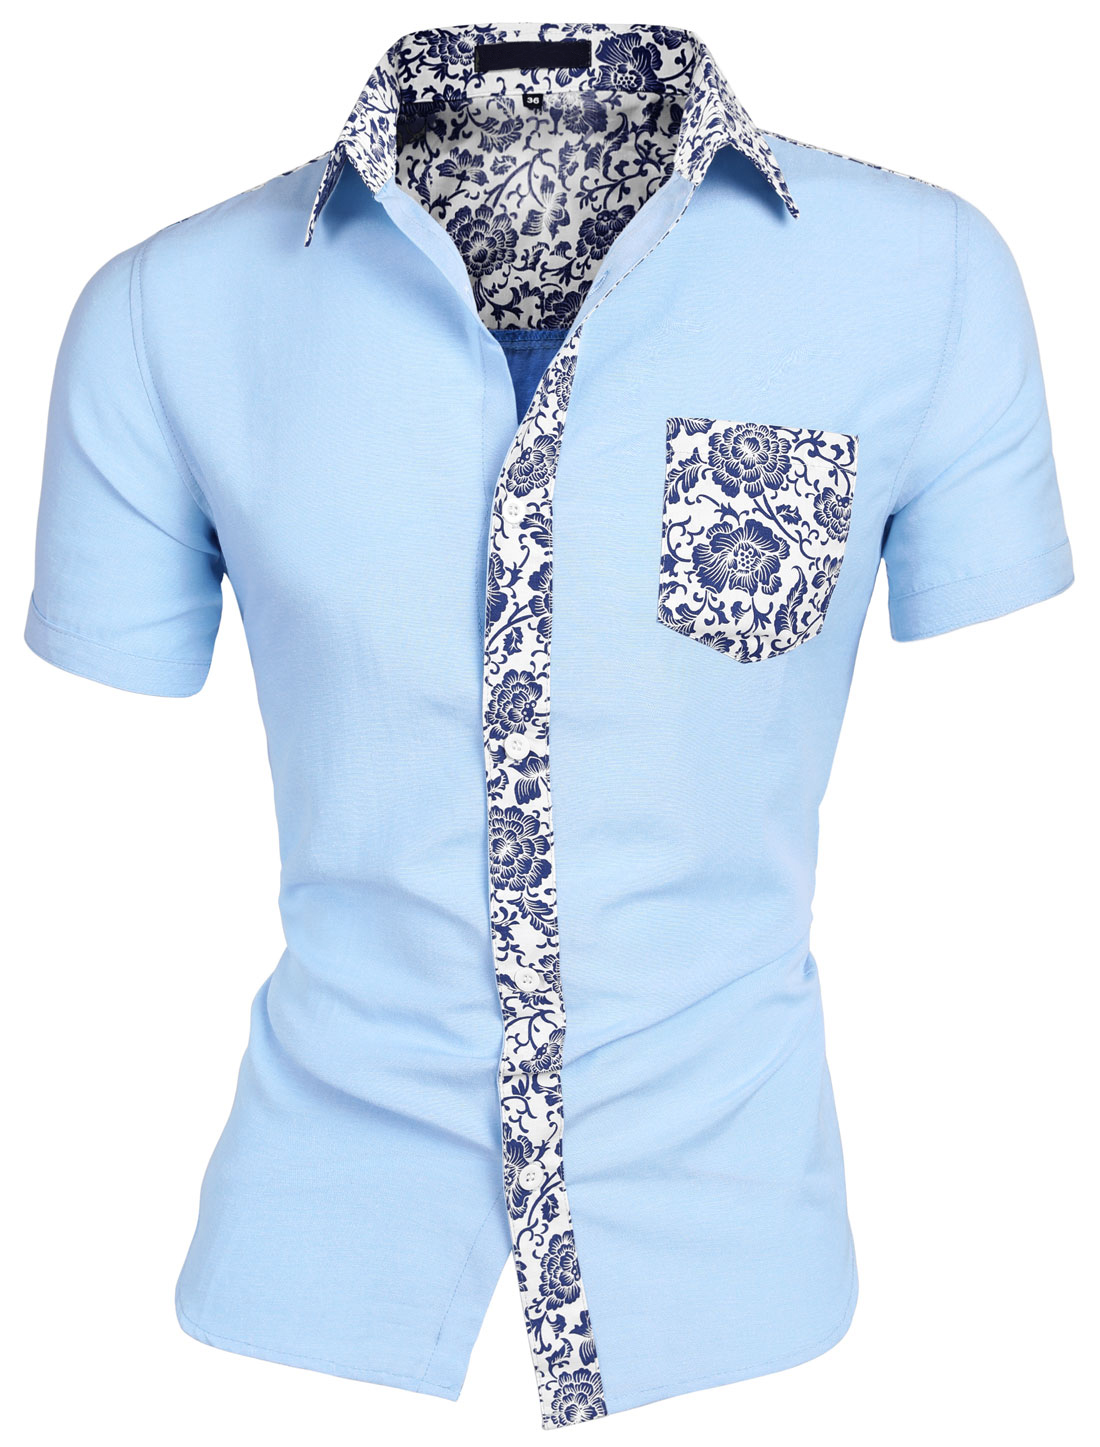 Men Short Sleeves Floral Prints Button-Front Shirt Blue L